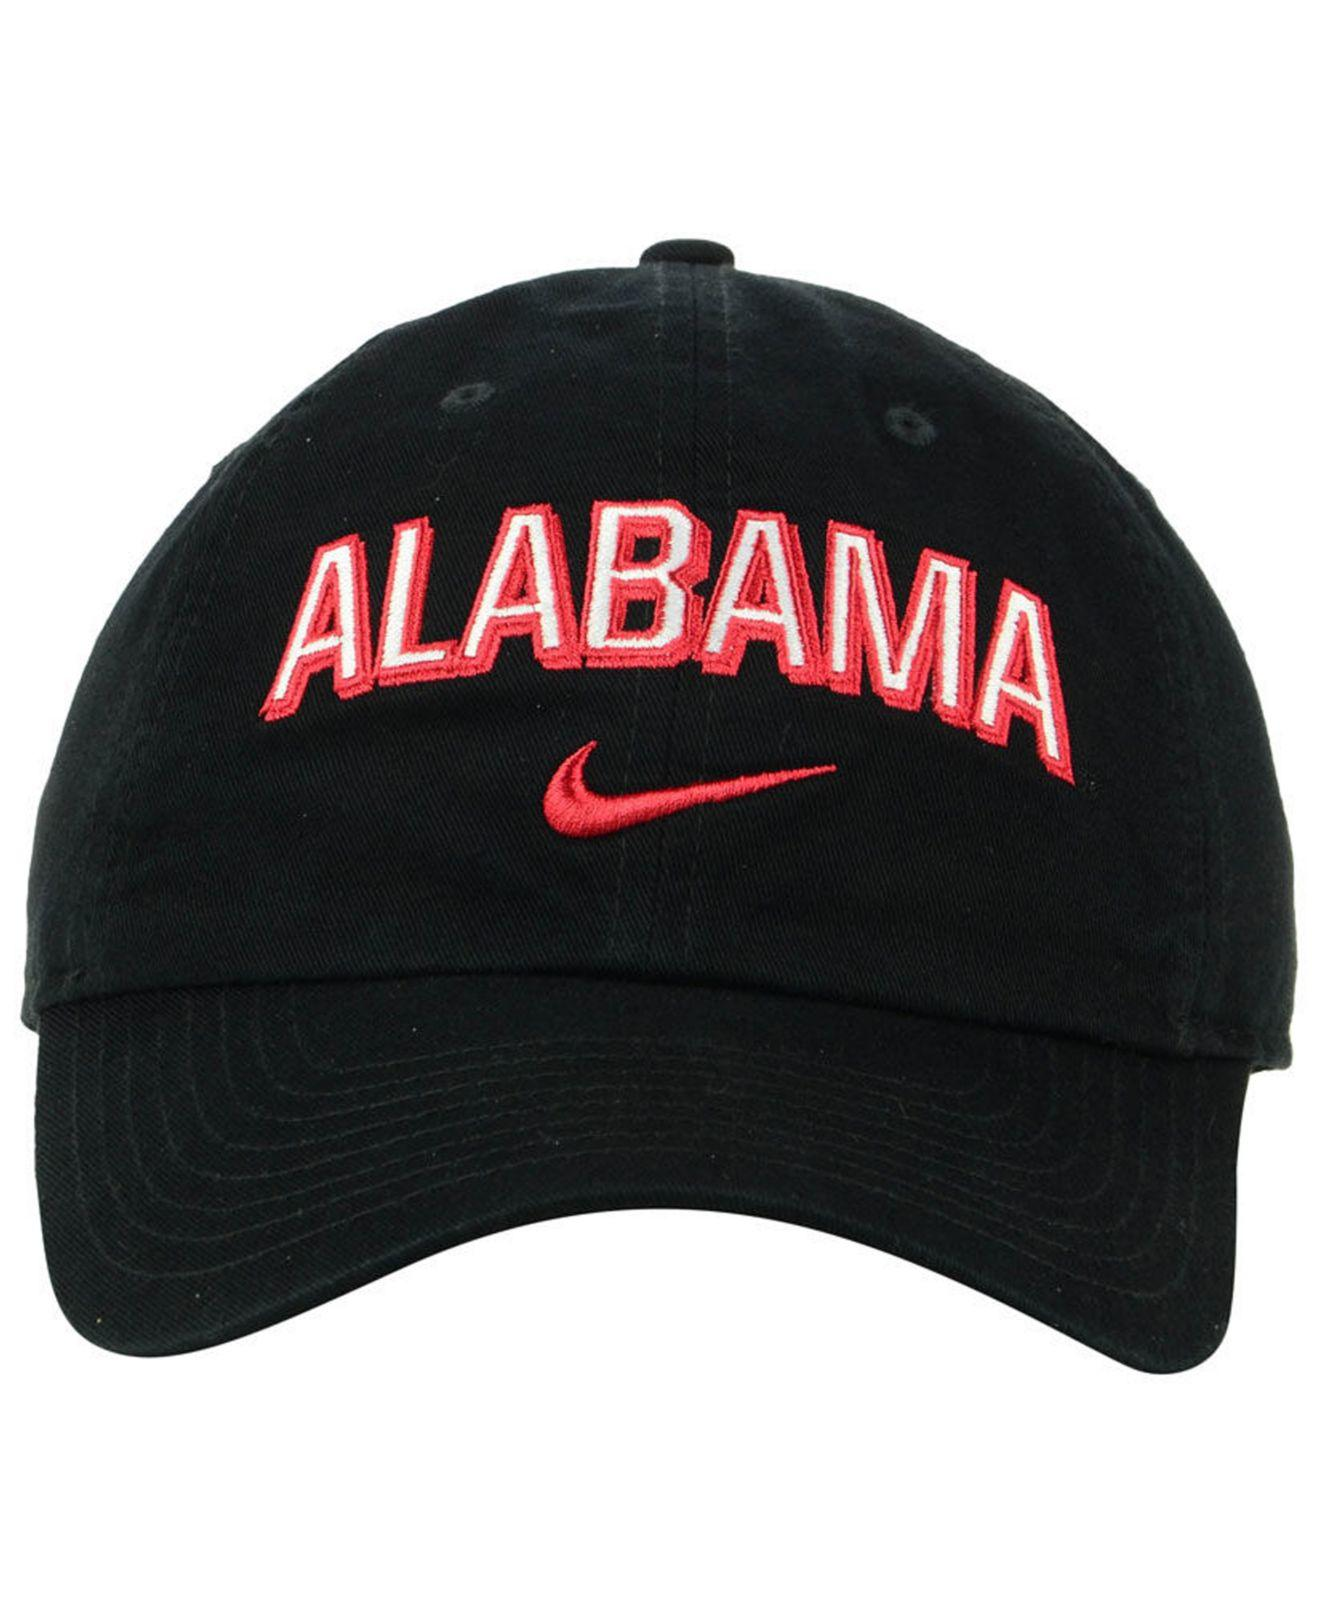 new products b9807 20c7f Lyst - Nike Alabama Crimson Tide H86 Wordmark Swoosh Cap in Black for Men